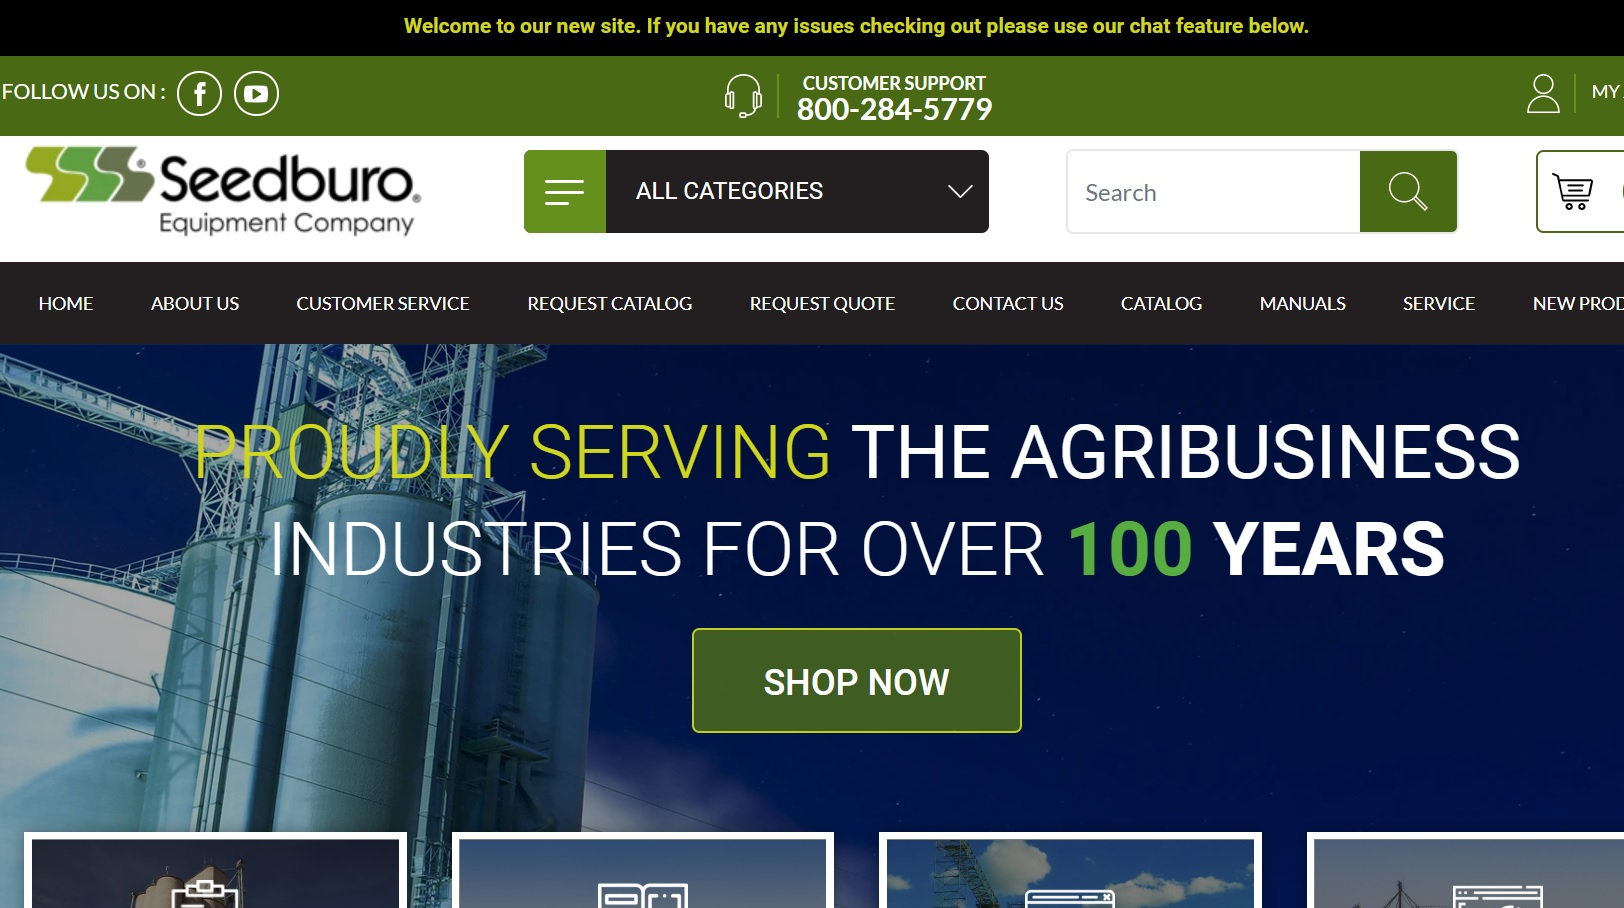 Seedburo® Equipment Company